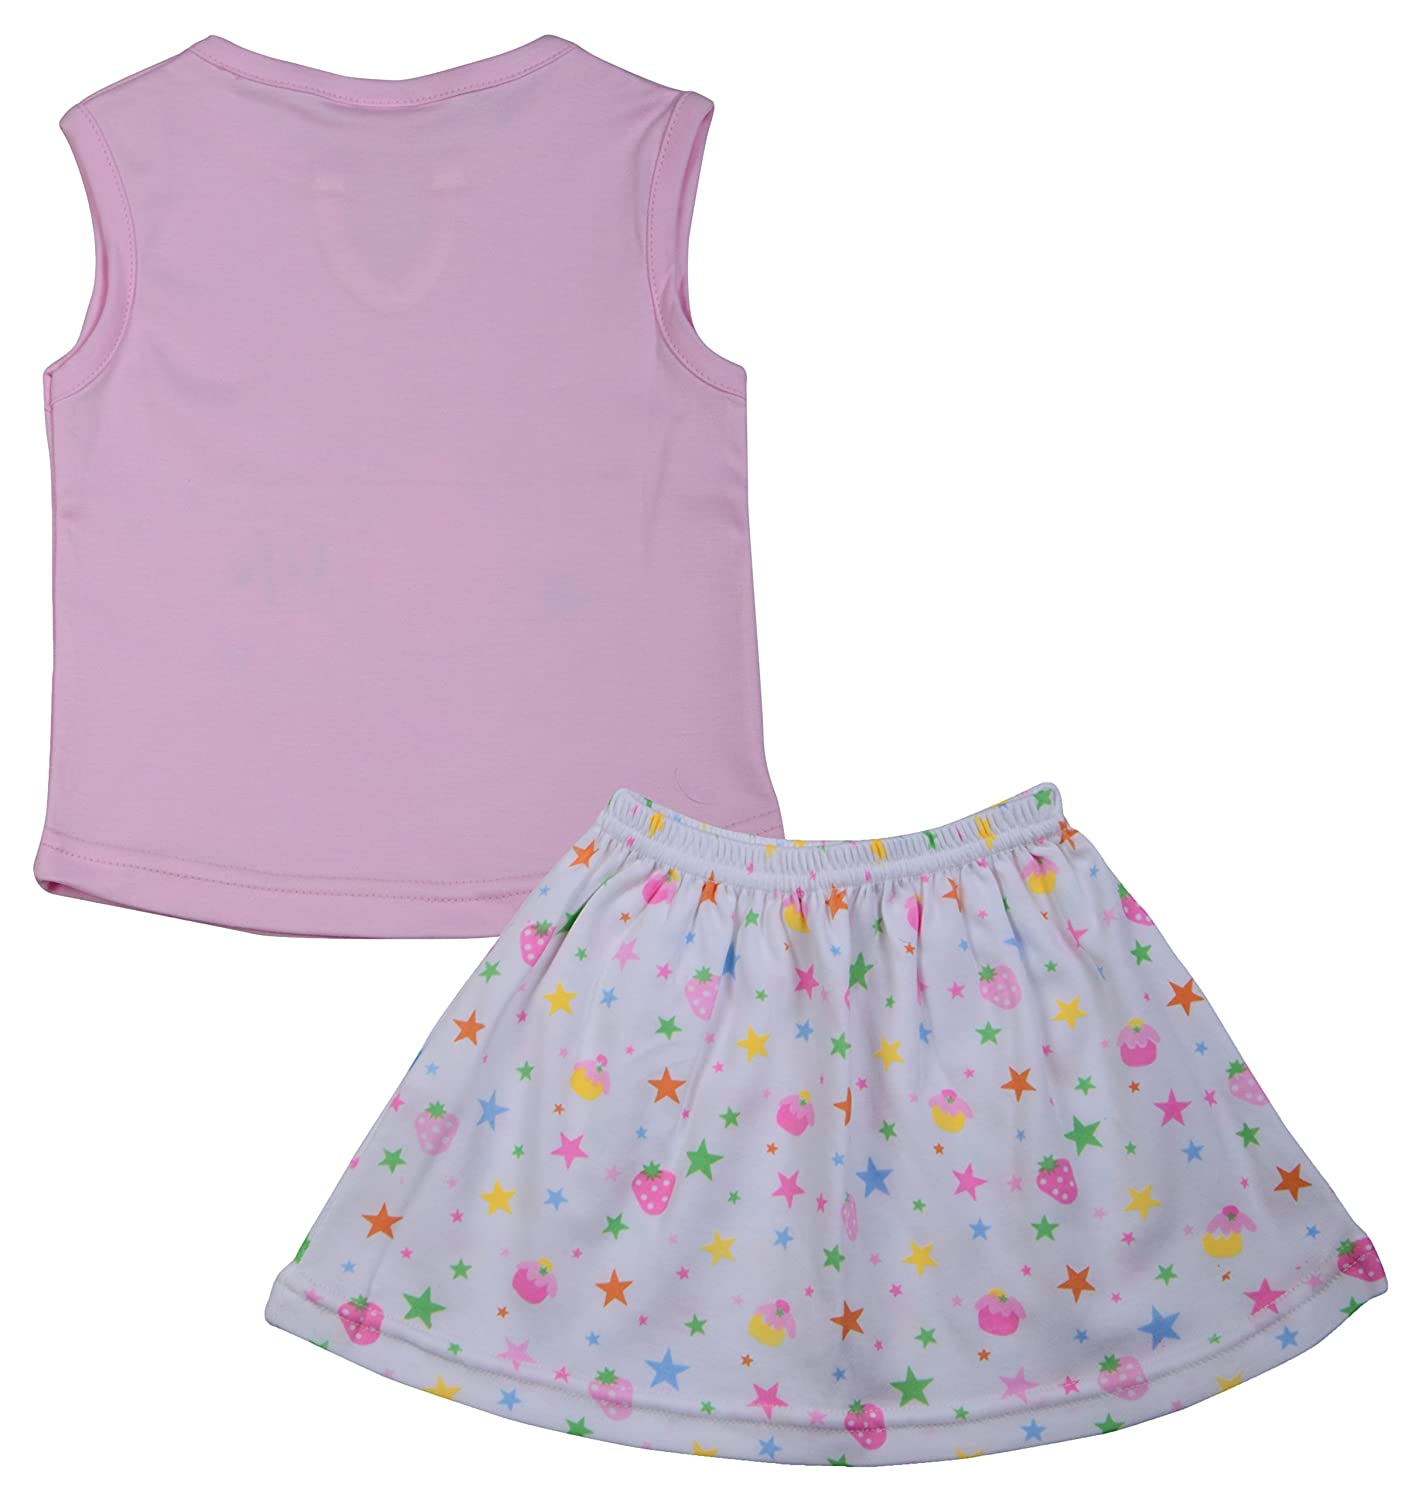 ad2983dd99a5 MYFA Baby Girl Hosiery Cute Top   Skirt Set – Super Fashionable for Your  Little Daughter – Available in Cool Summer Colors